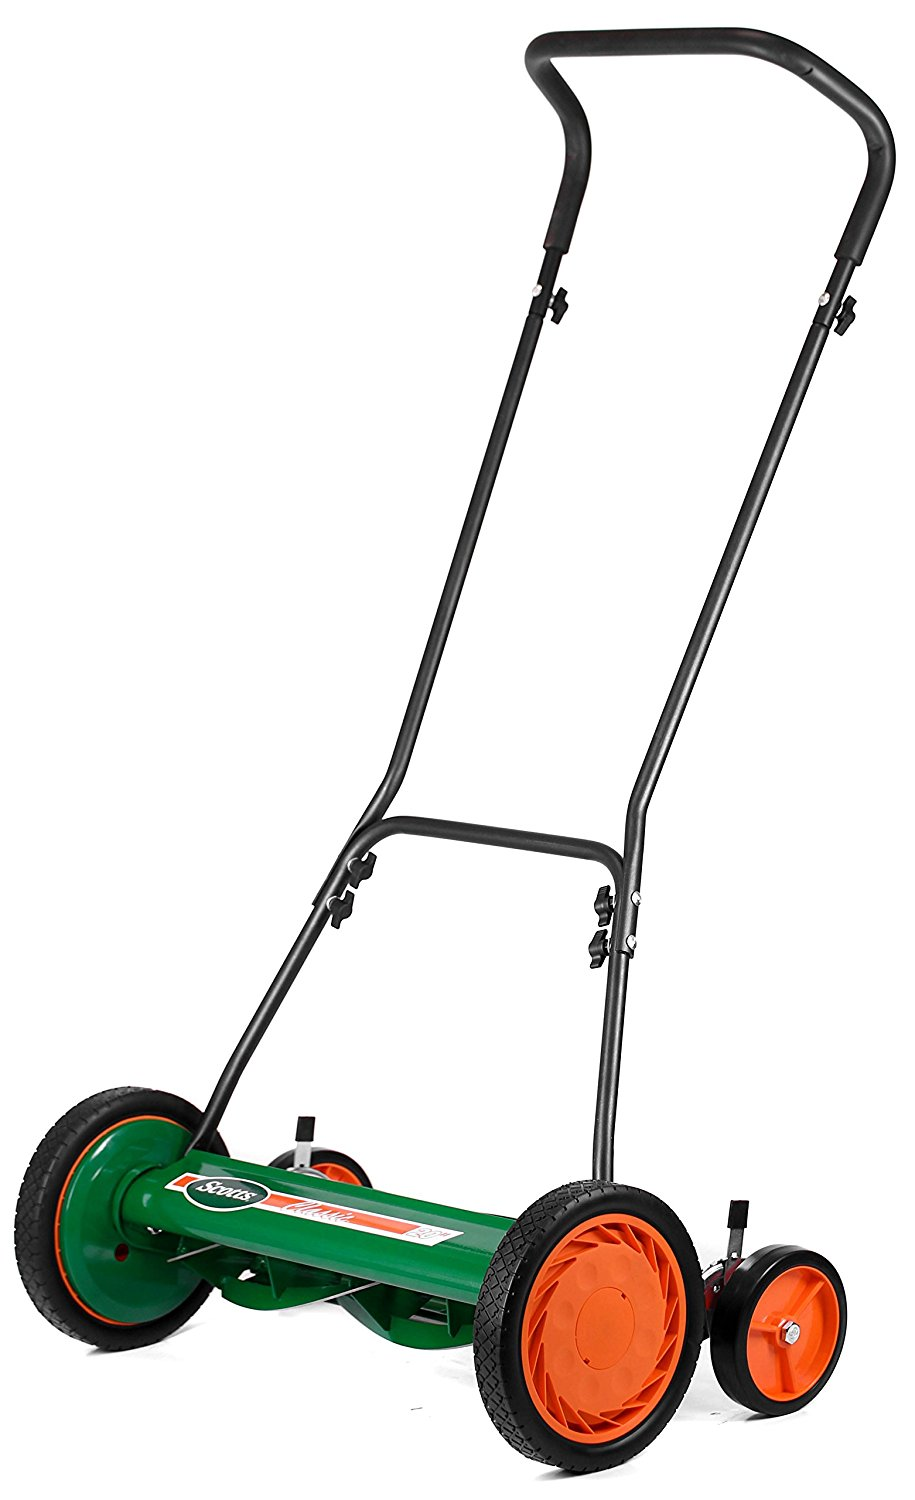 Cheap Used Riding Lawn Mowers For Sale Decor Ideas